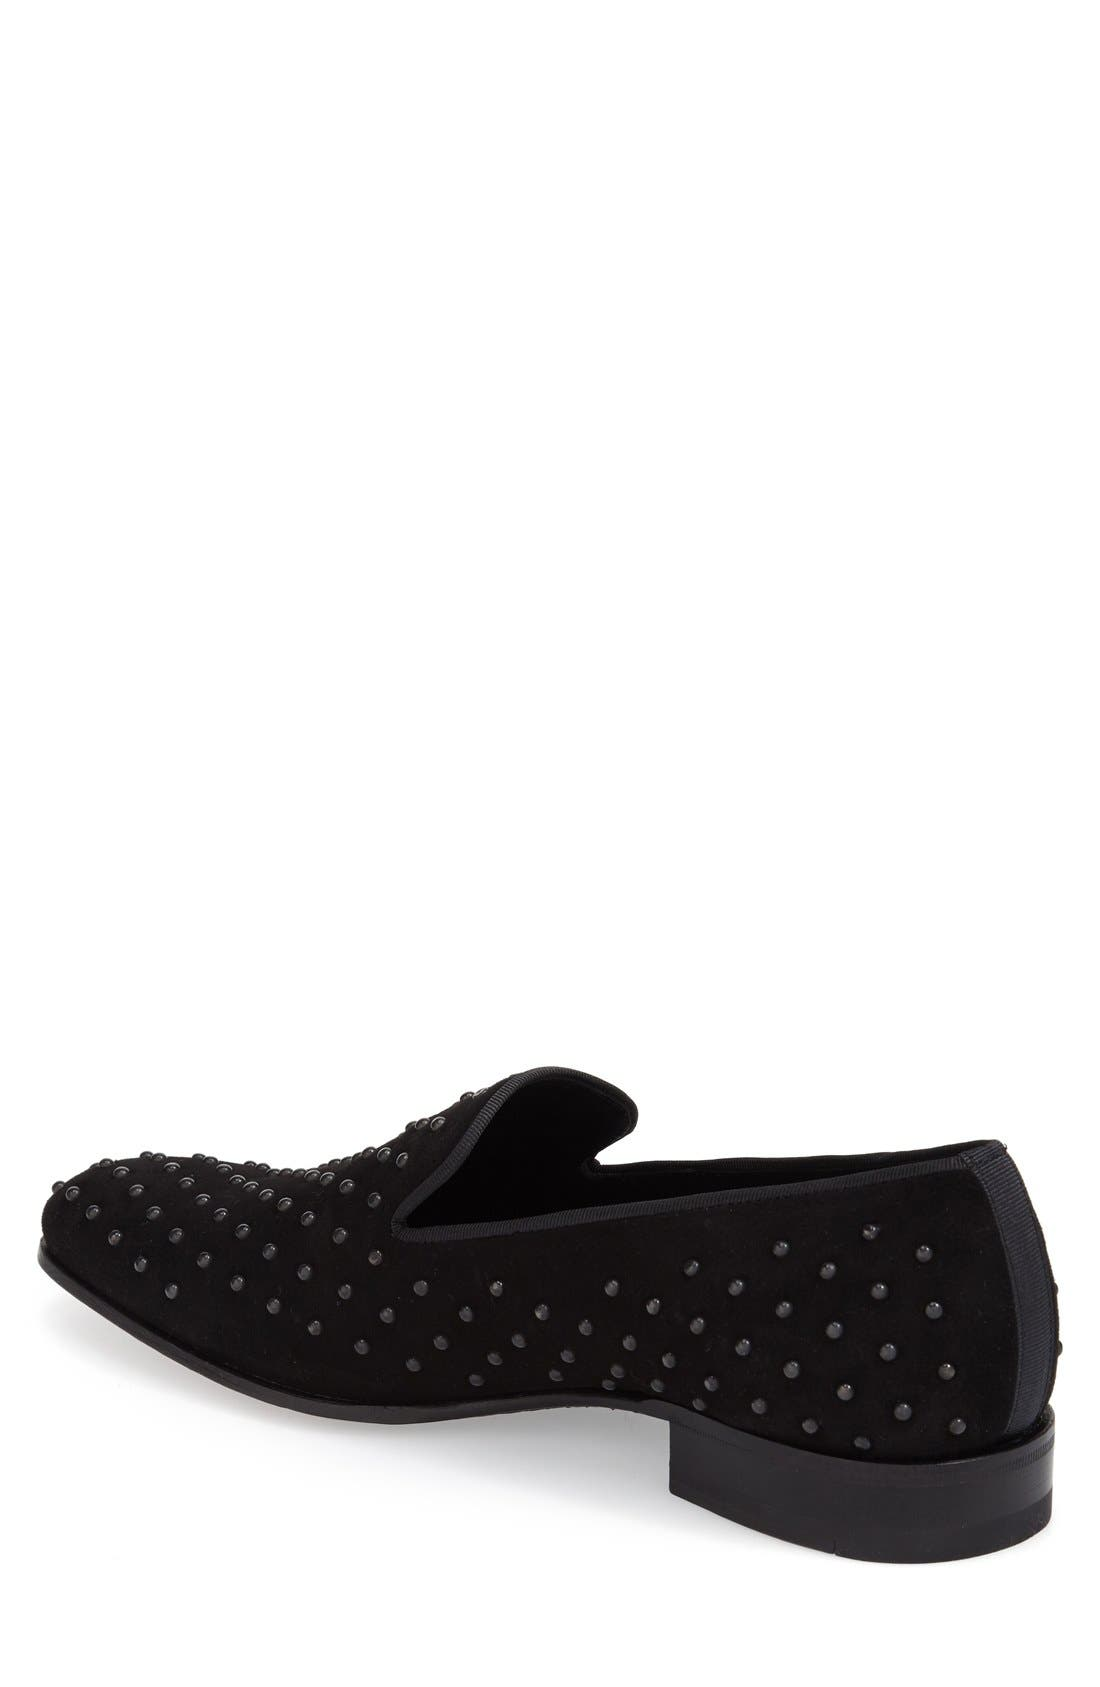 'Batiste' Studded Venetian Loafer,                             Alternate thumbnail 3, color,                             BLACK PRINTED FABRC